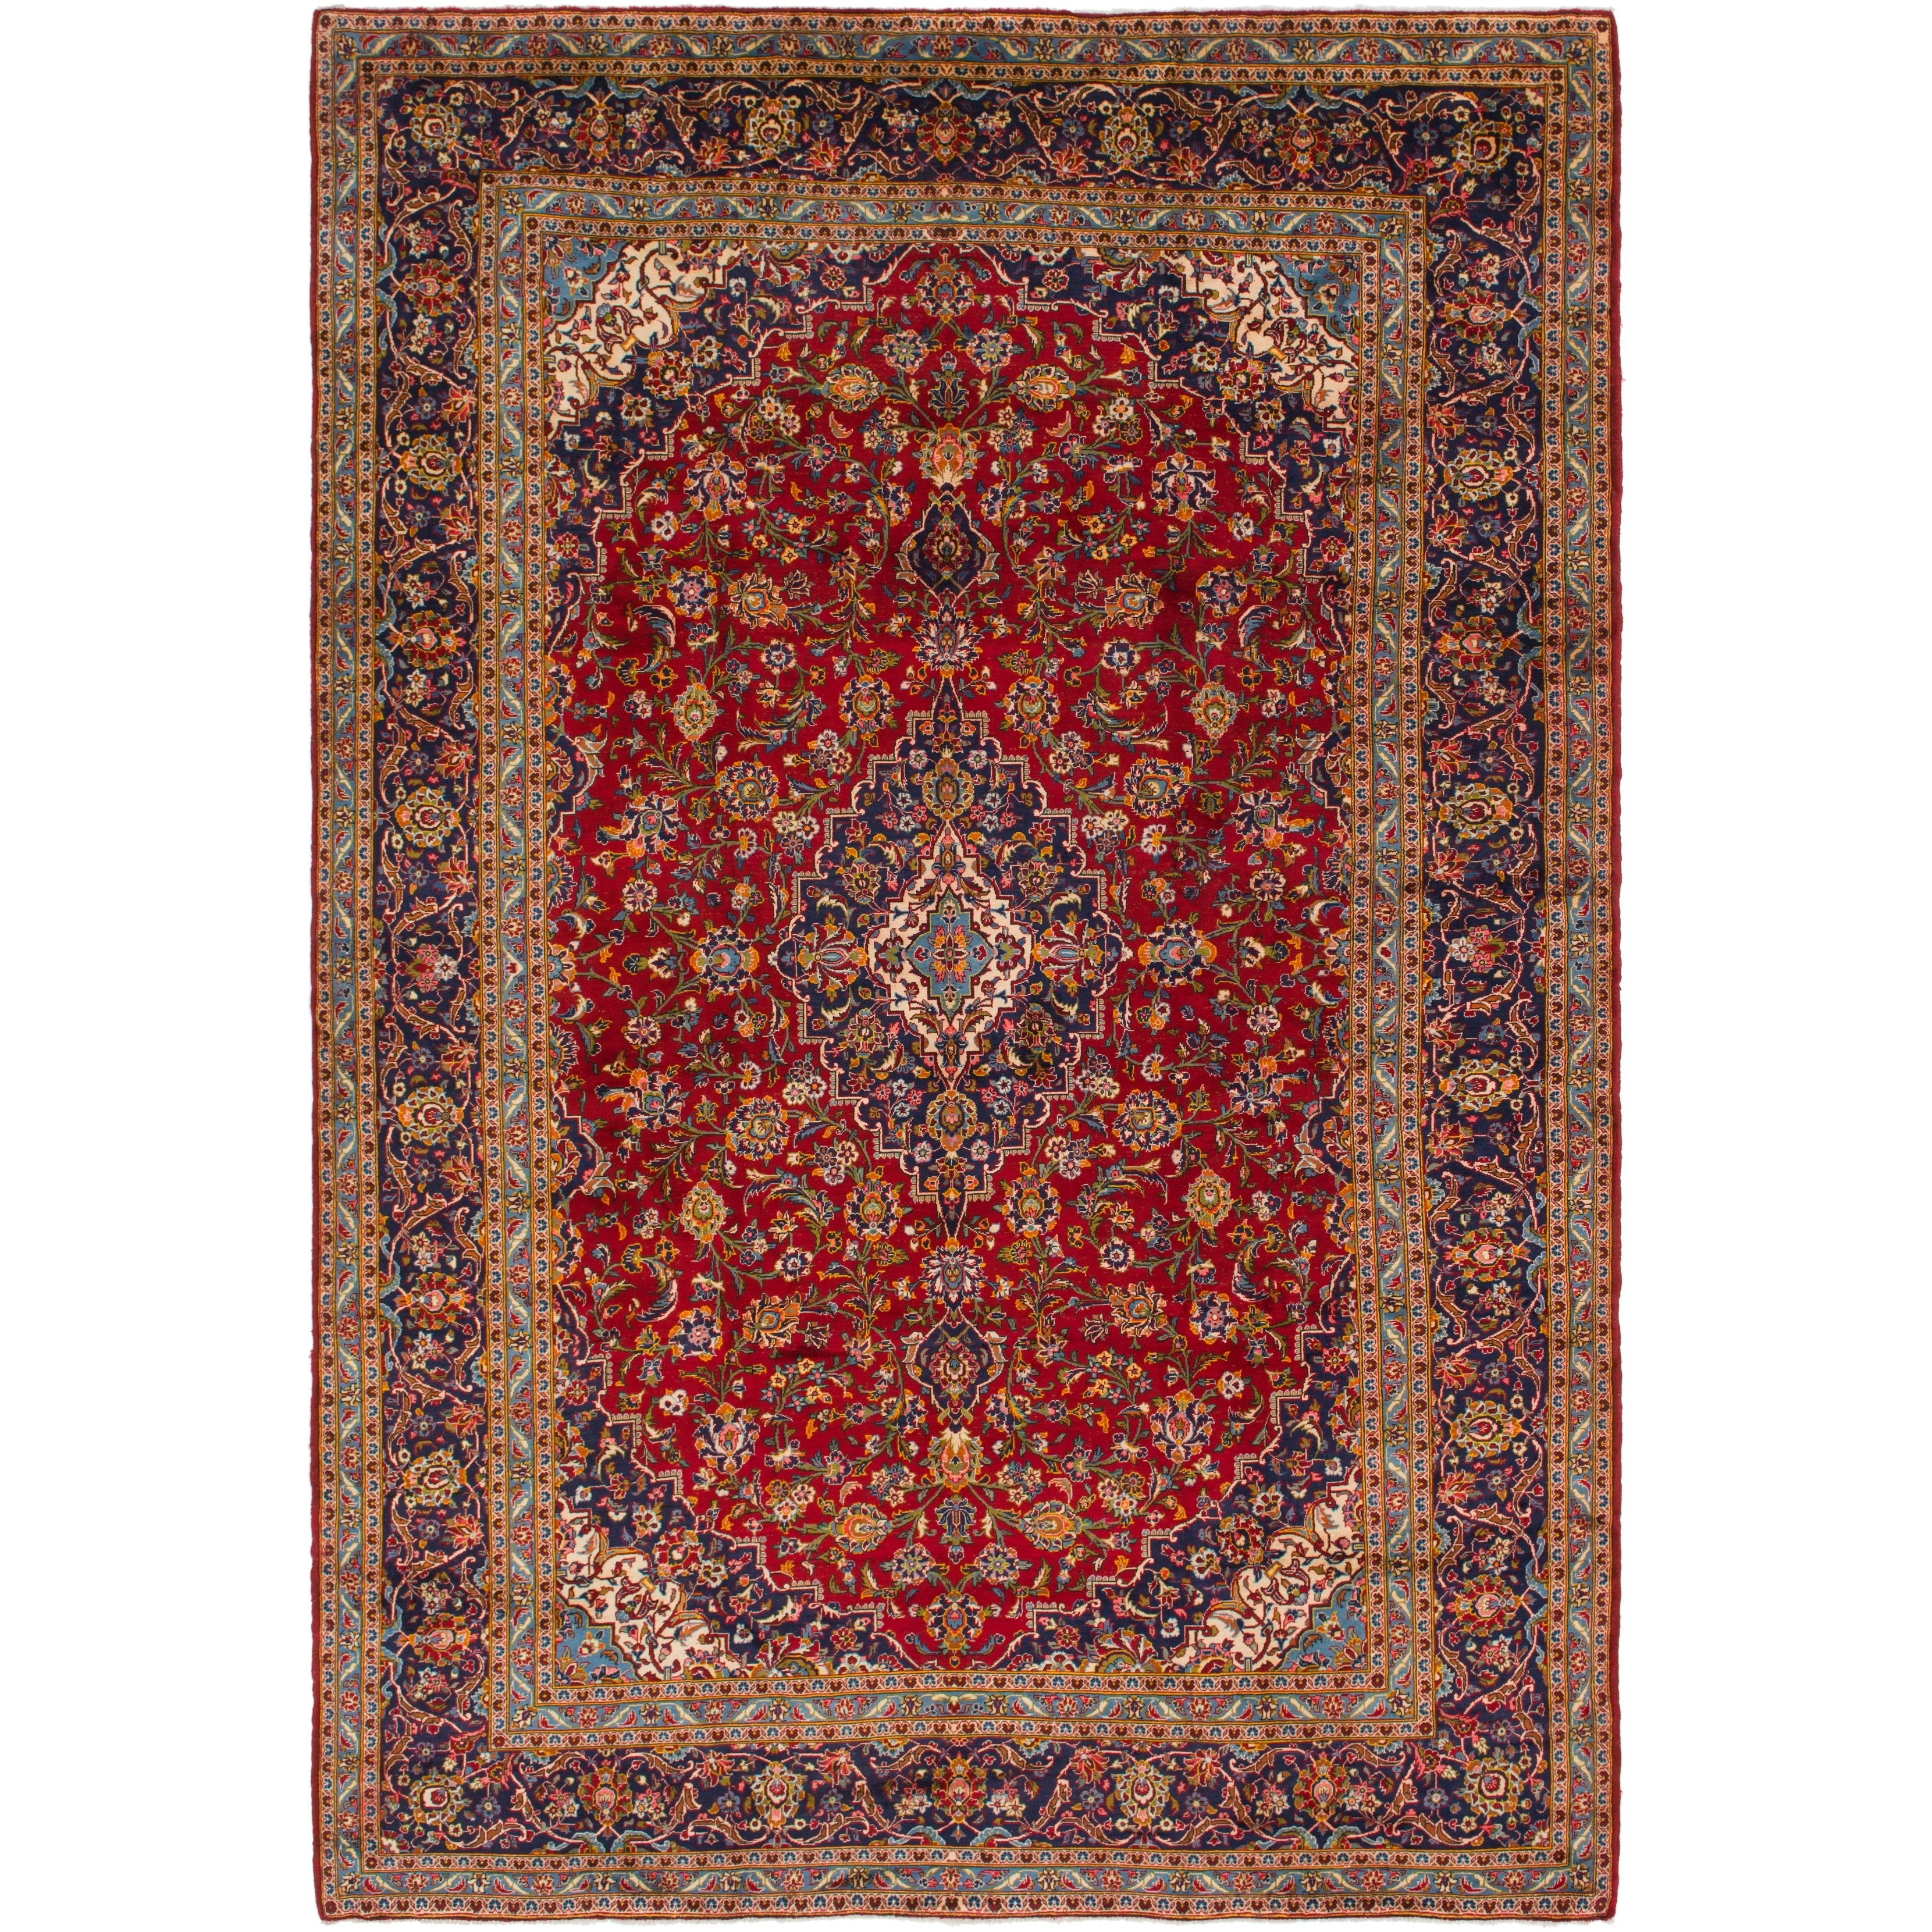 Hand Knotted Kashan Semi Antique Wool Area Rug - 9 8 x 14 3 (Red - 9 8 x 14 3)